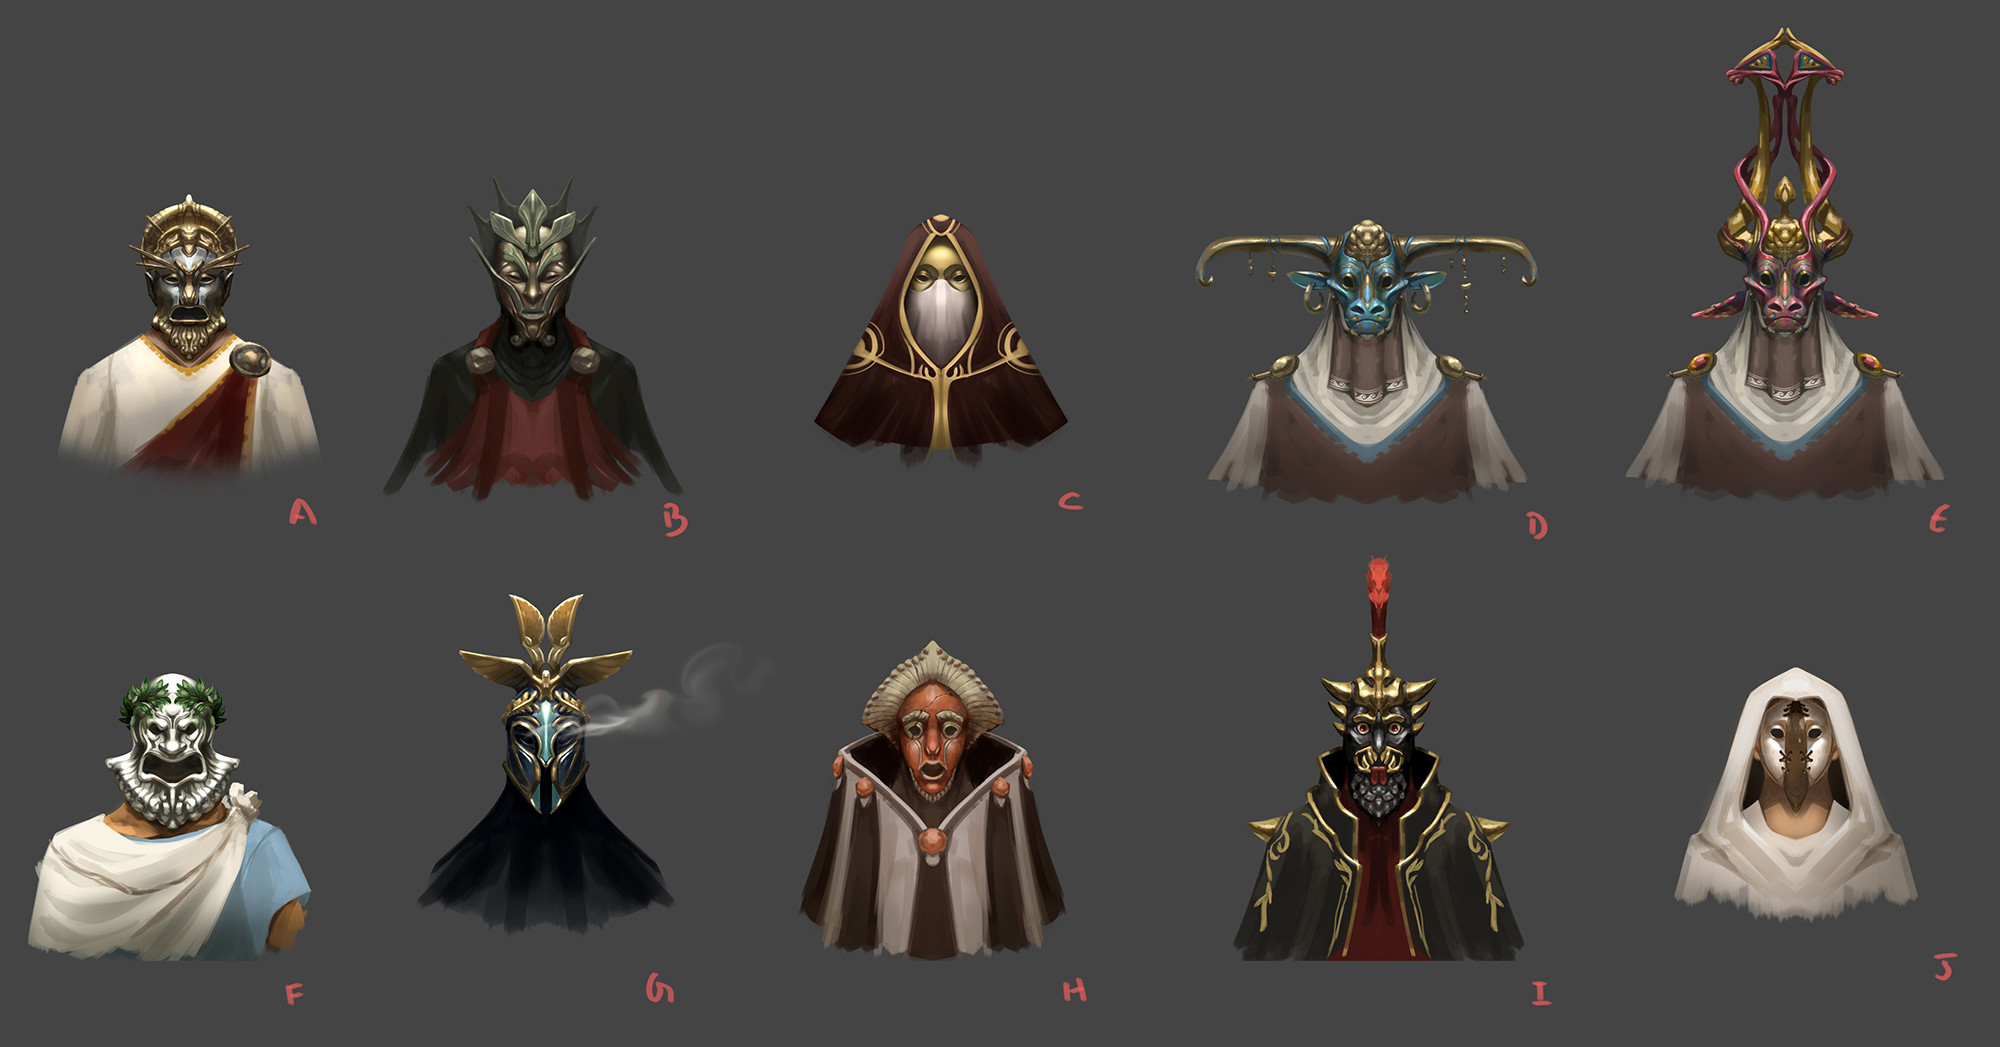 The cast of villains were described as masked senators. I liked the idea of each mask using a different material prevalent during the Roman Empire.